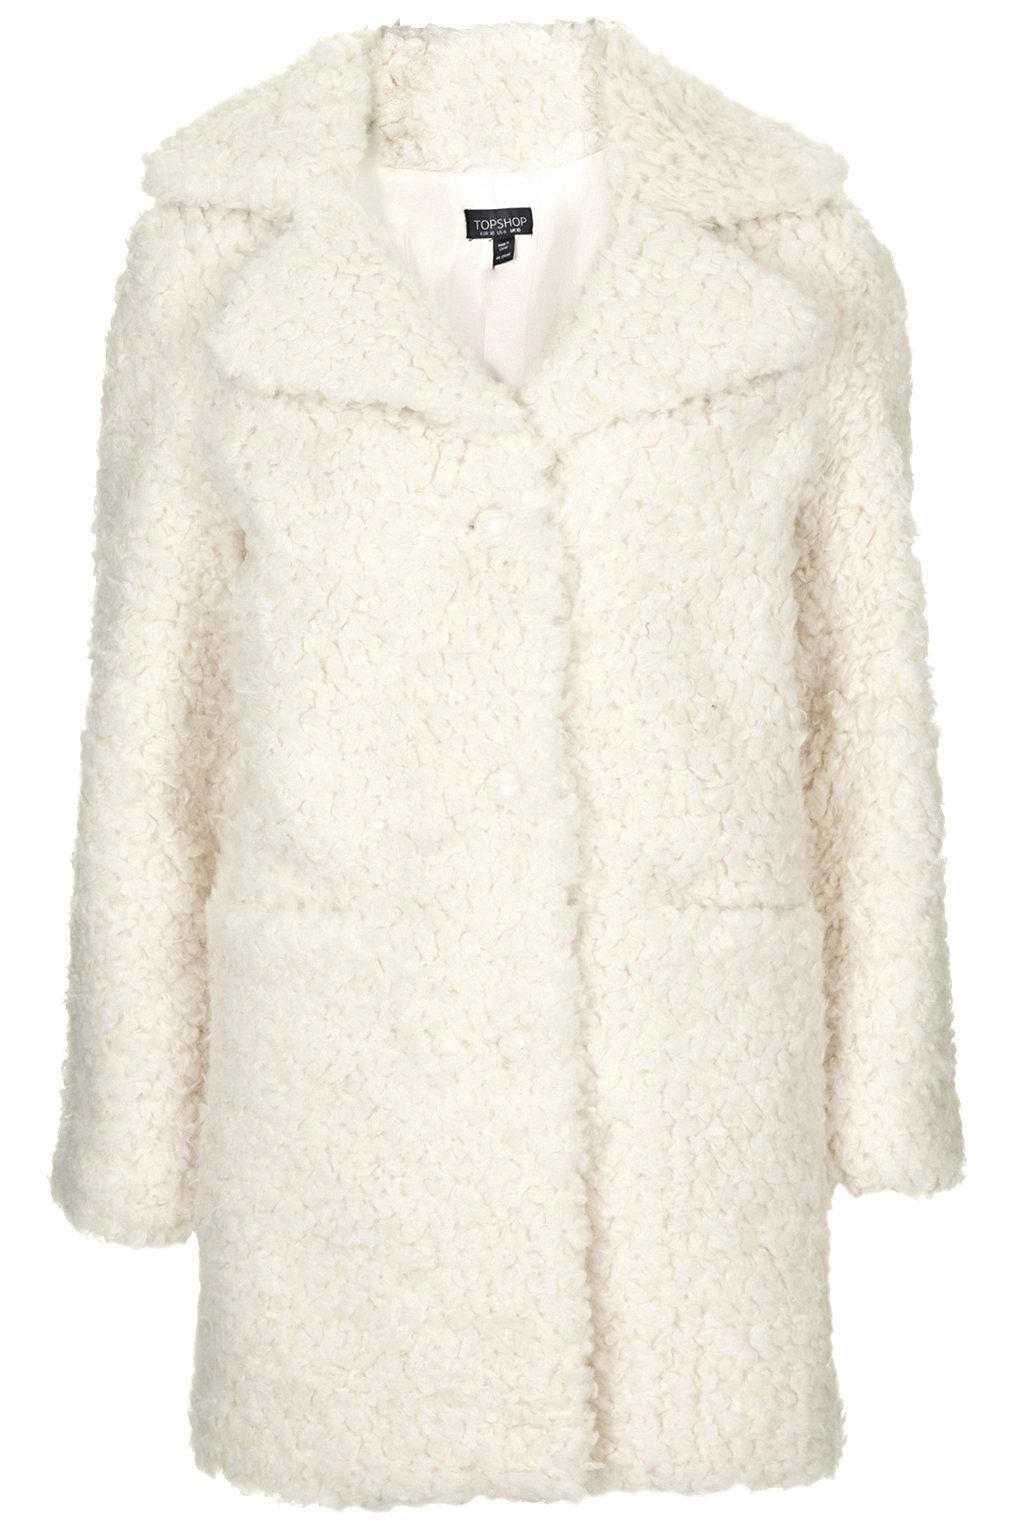 Fur Teddy Coat - Topshop